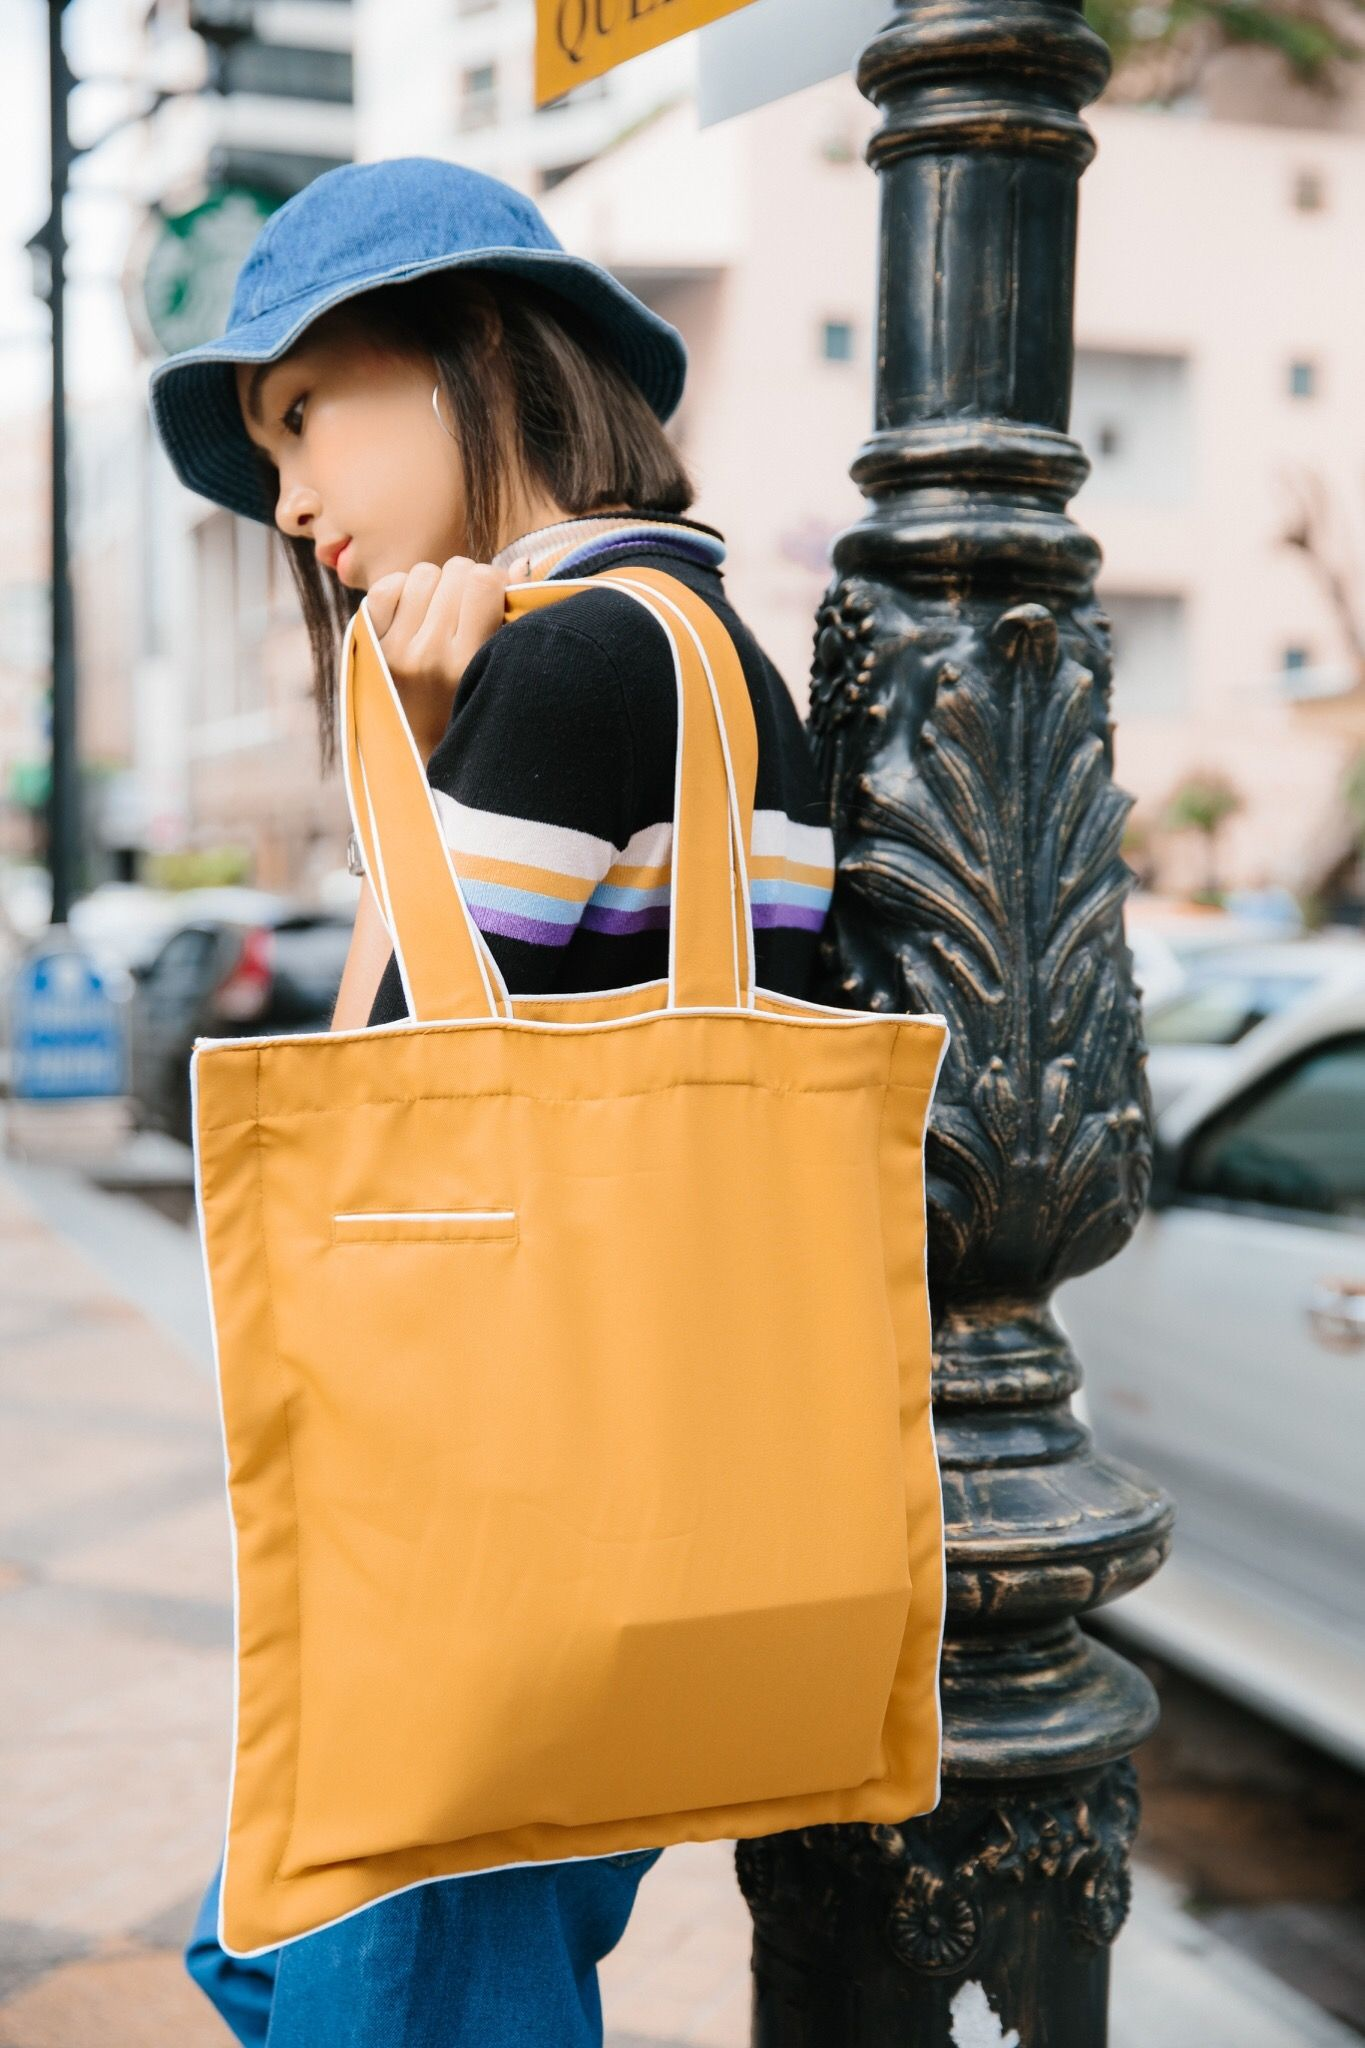 904a656b67d4 Vavavala Tote – Mustard Yellow Tote Bag in 2018